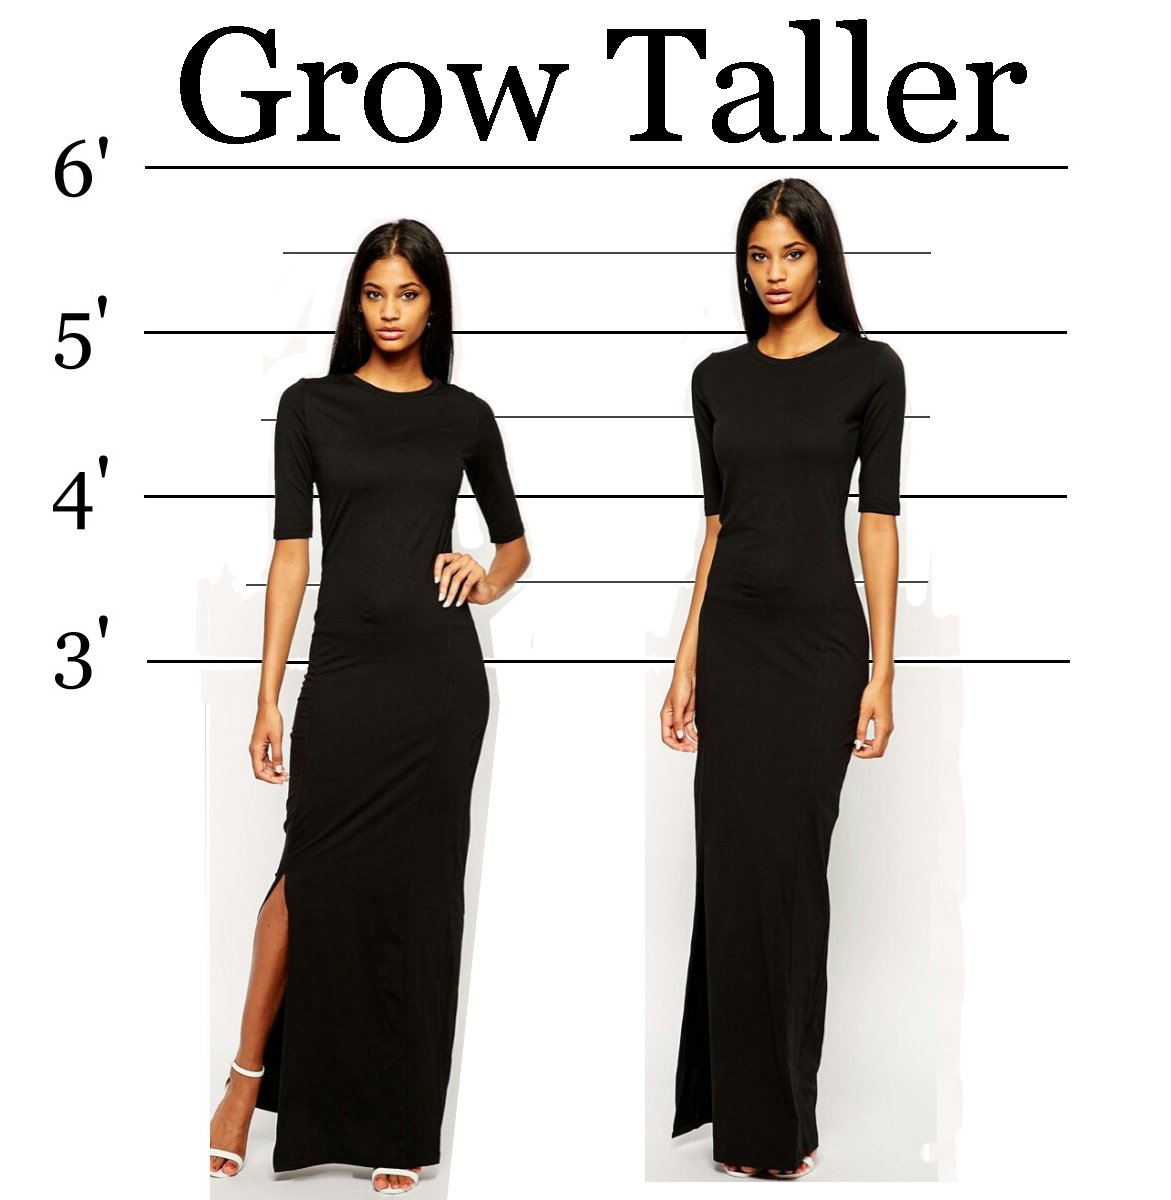 Image result for grow taller